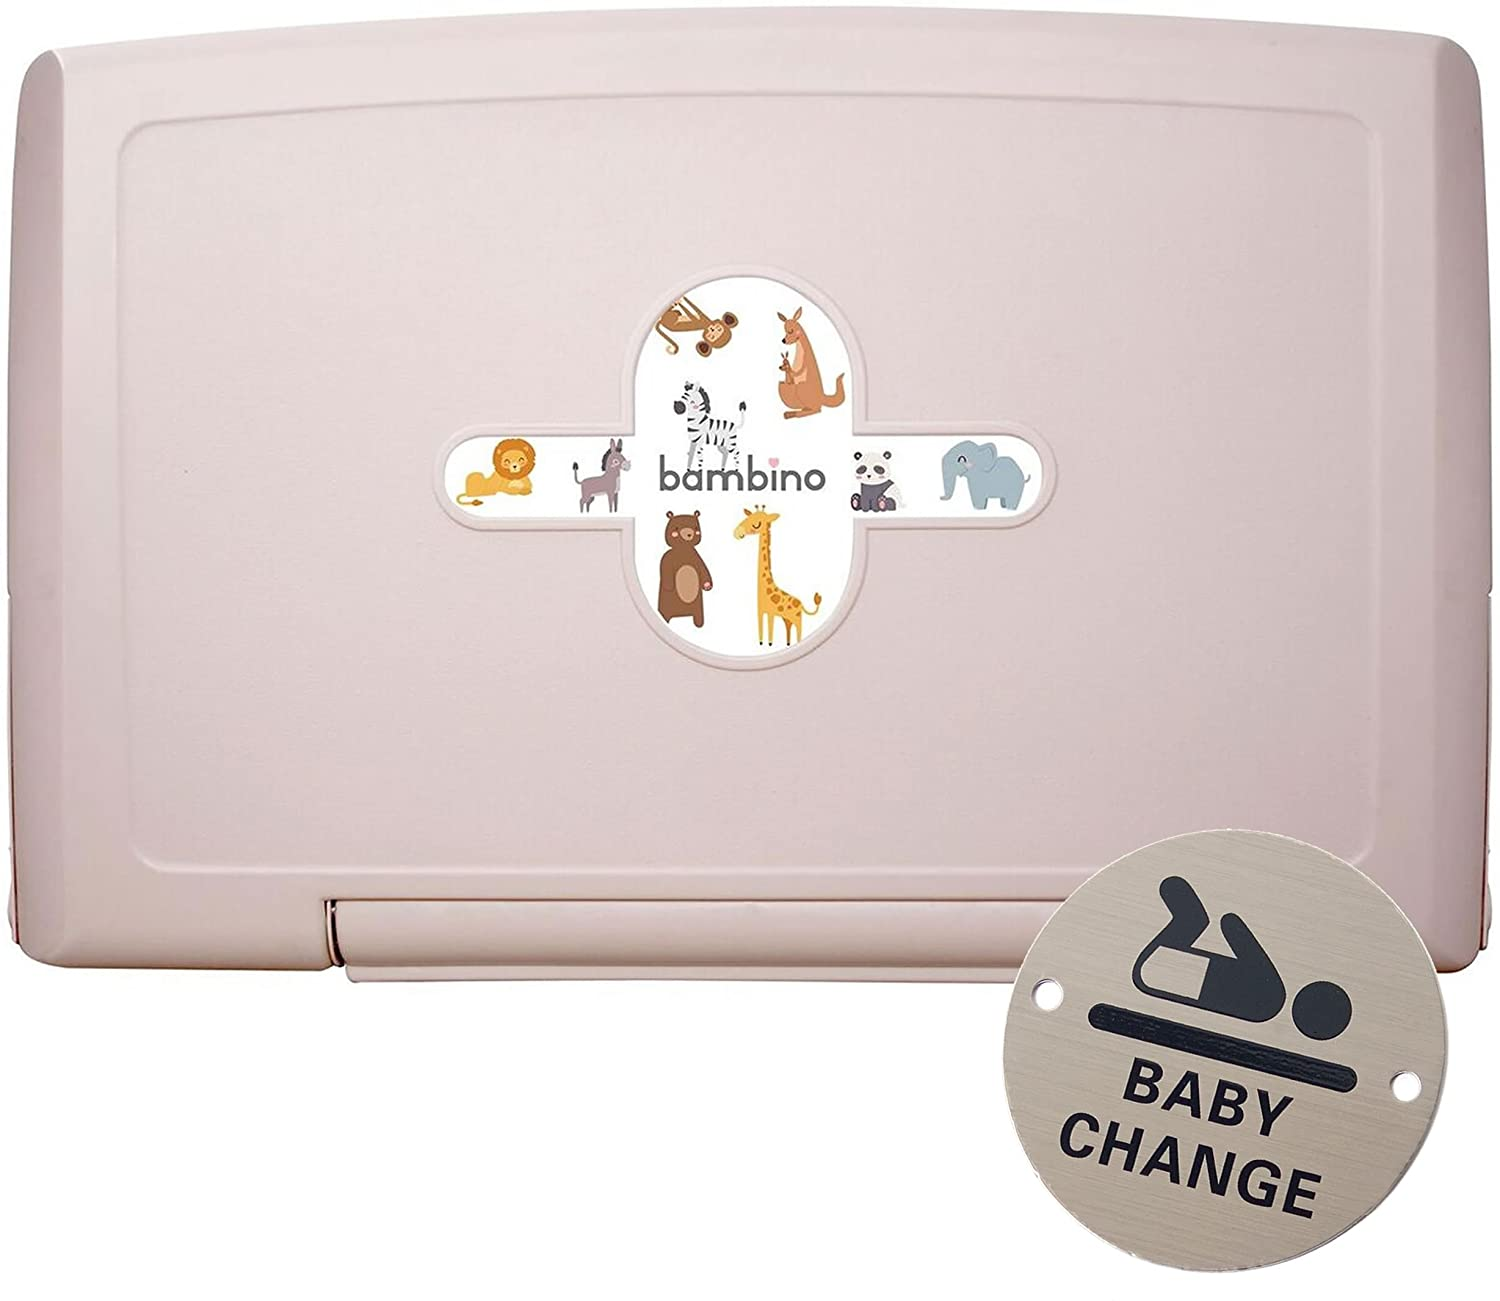 Bambino Wall Mounted Fold Down Horizontal Baby Changing Table Unit with Free Baby Changing Door Sign 0000022591